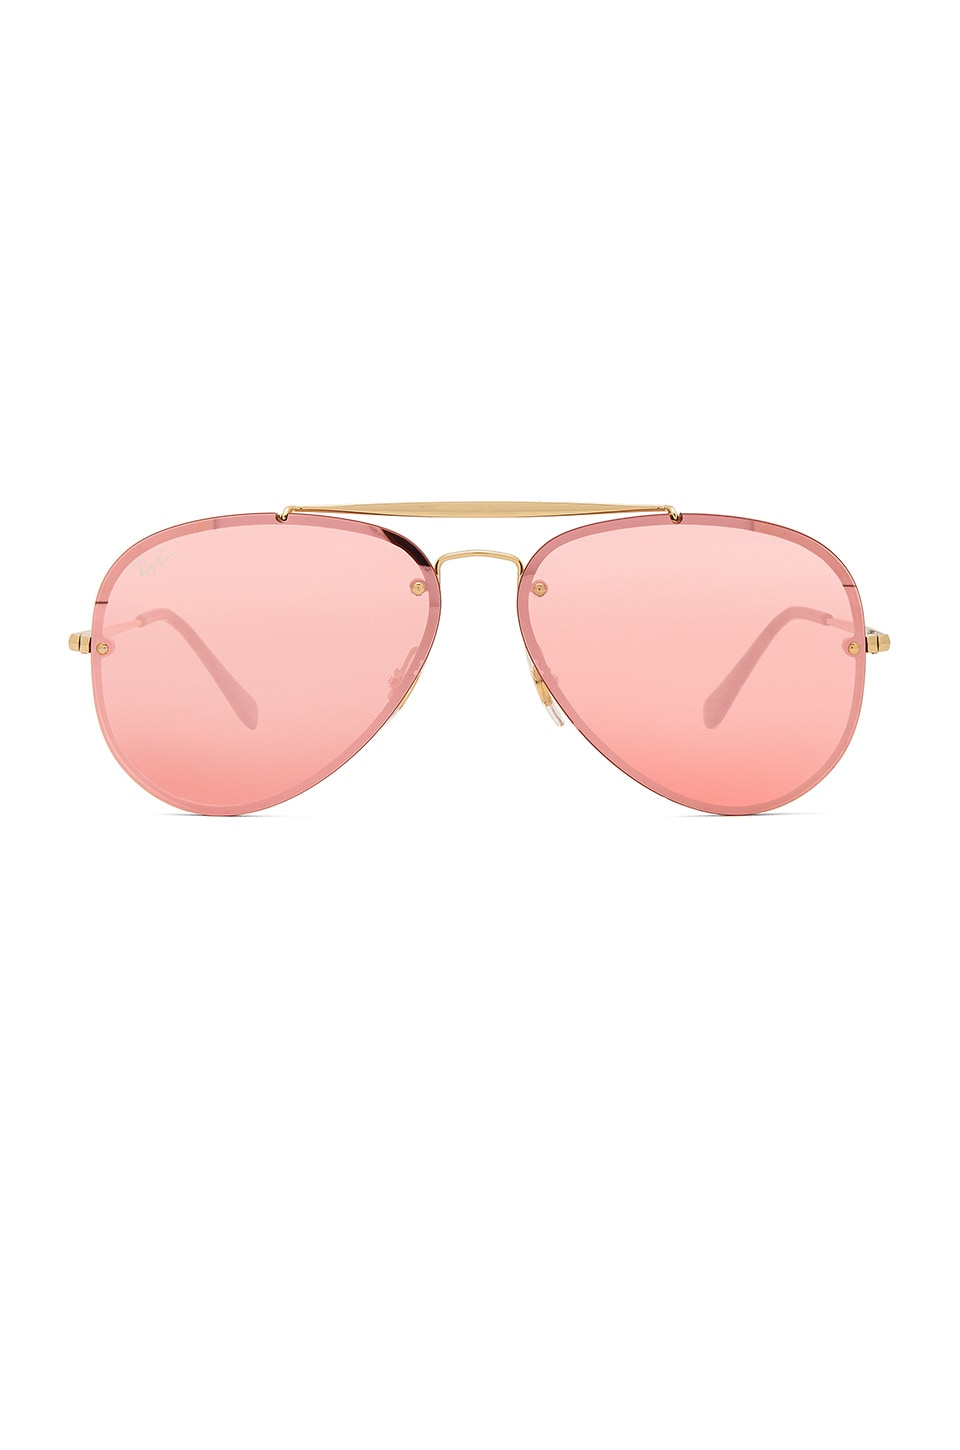 Ray-Ban Blaze Aviator in Gold & Pink Mirror